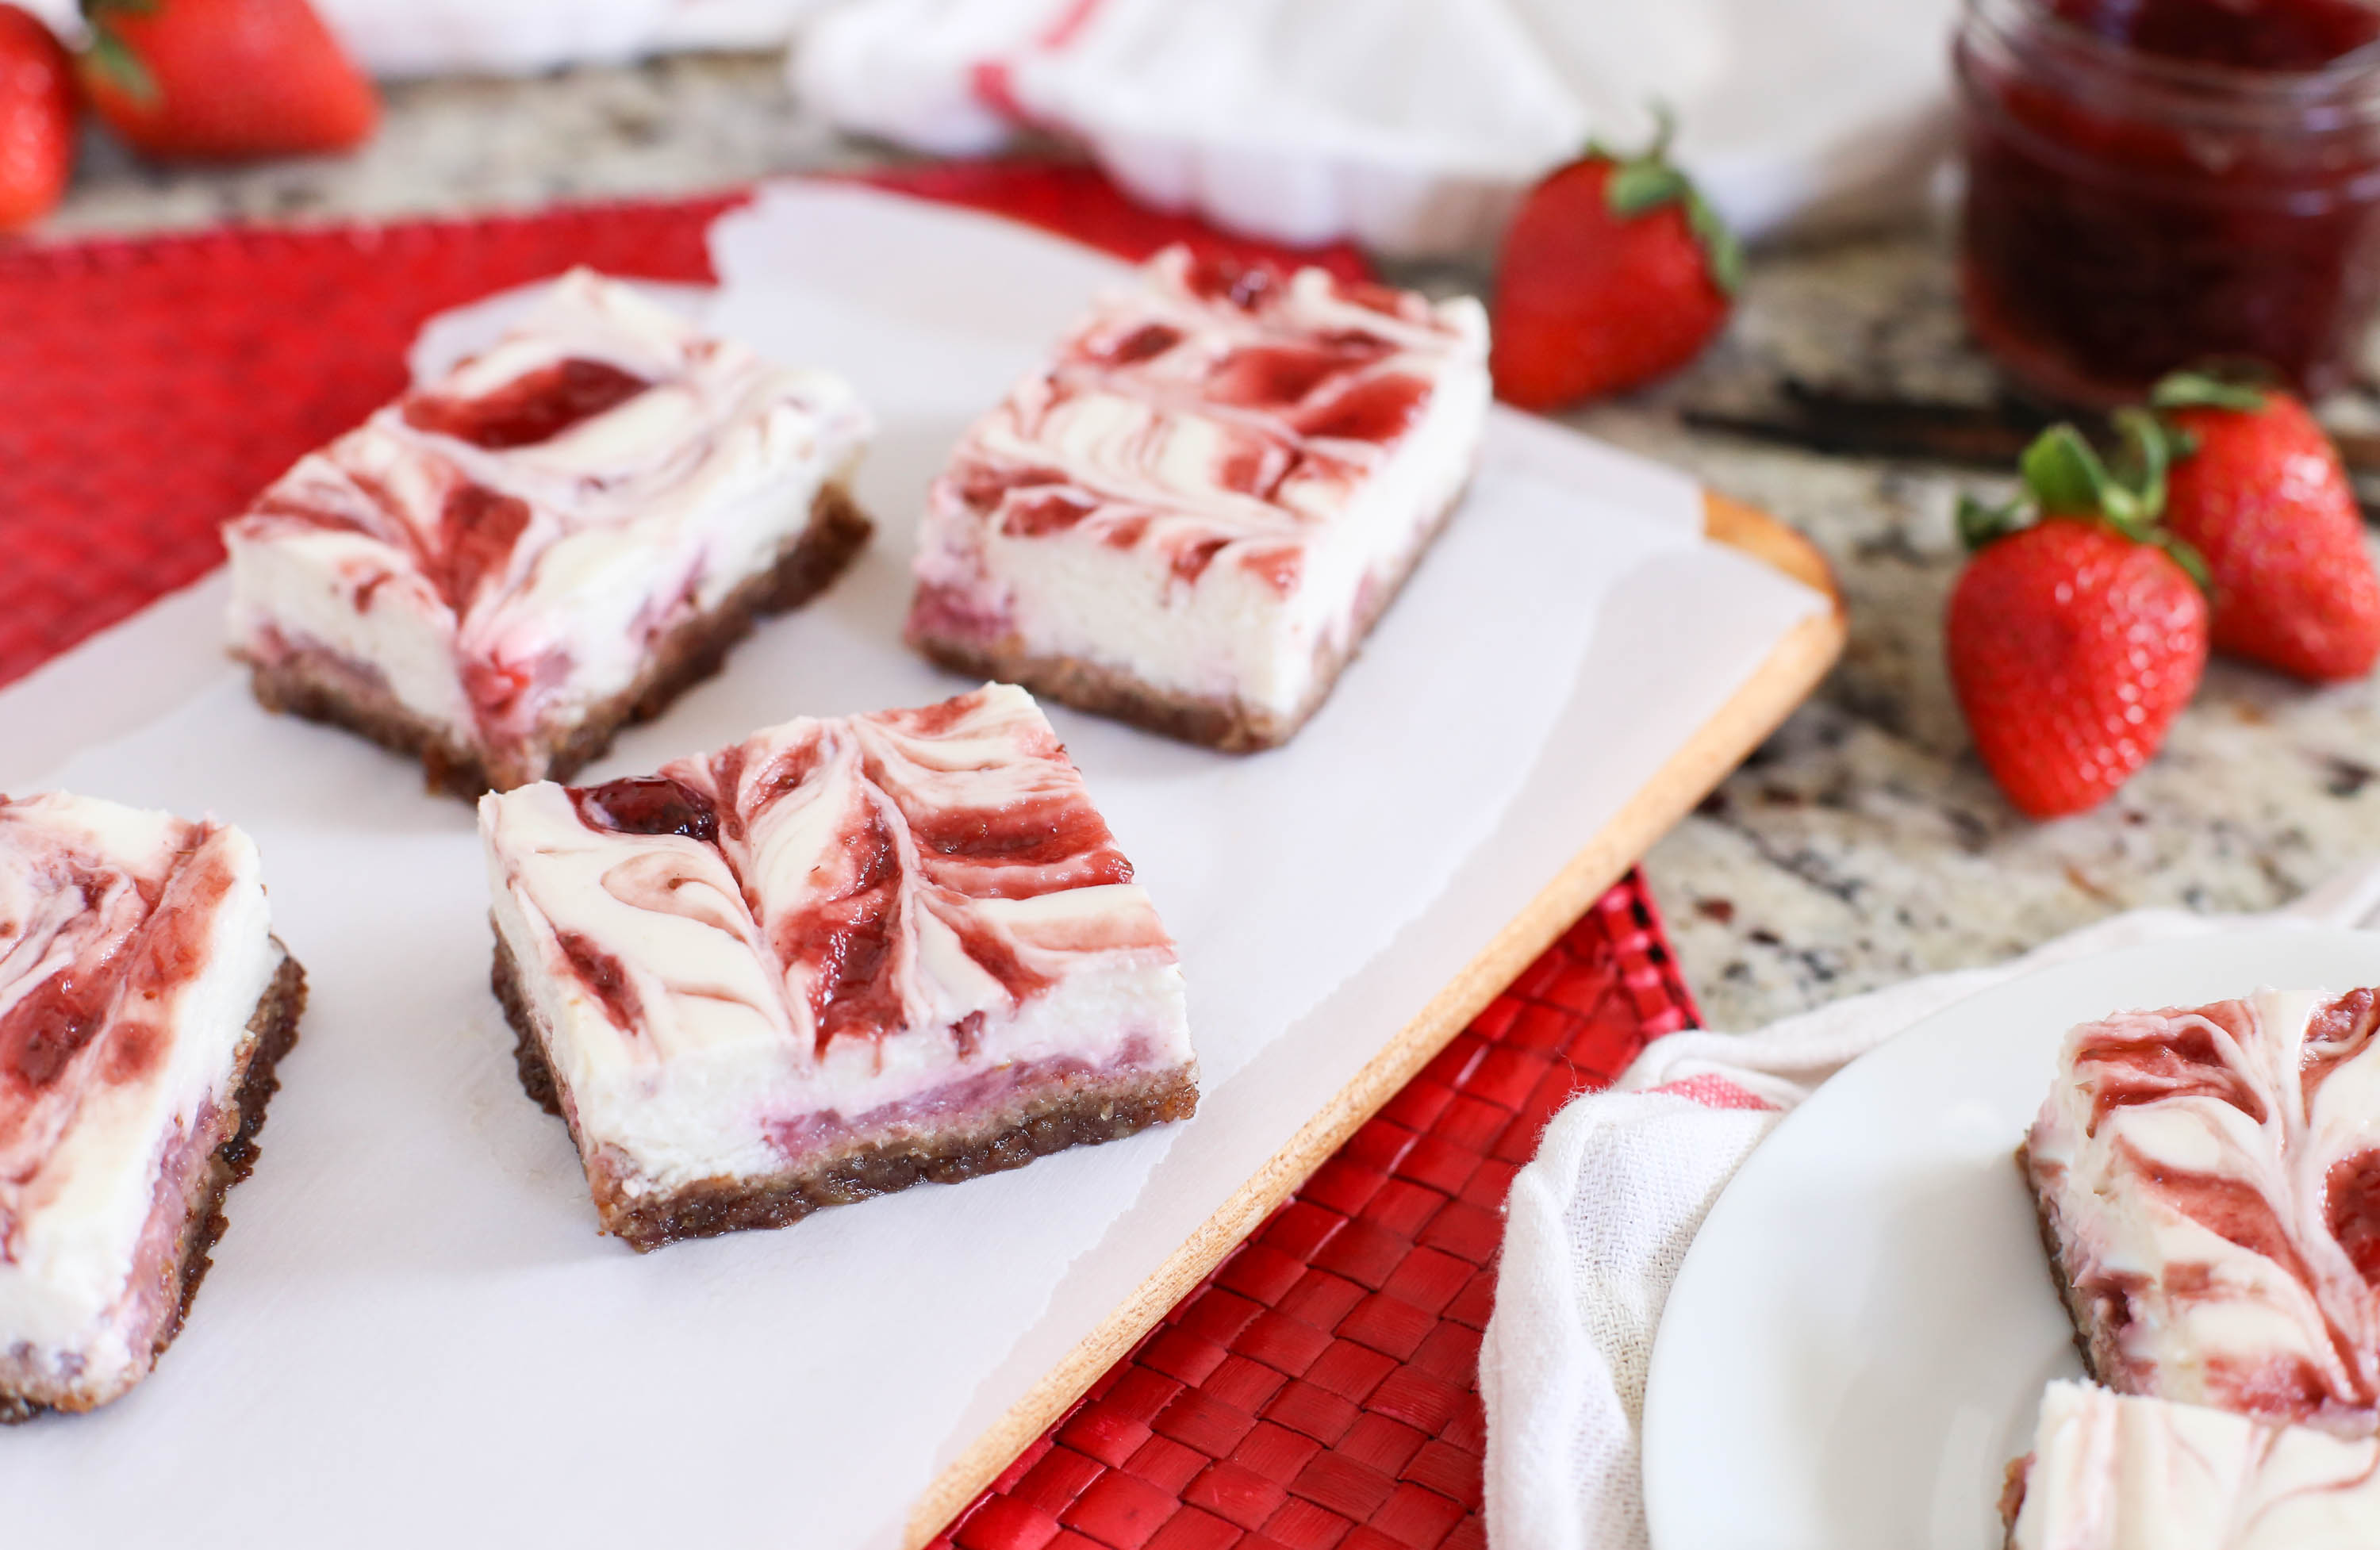 Skinny Strawberry Cheesecake Bars by The District Table